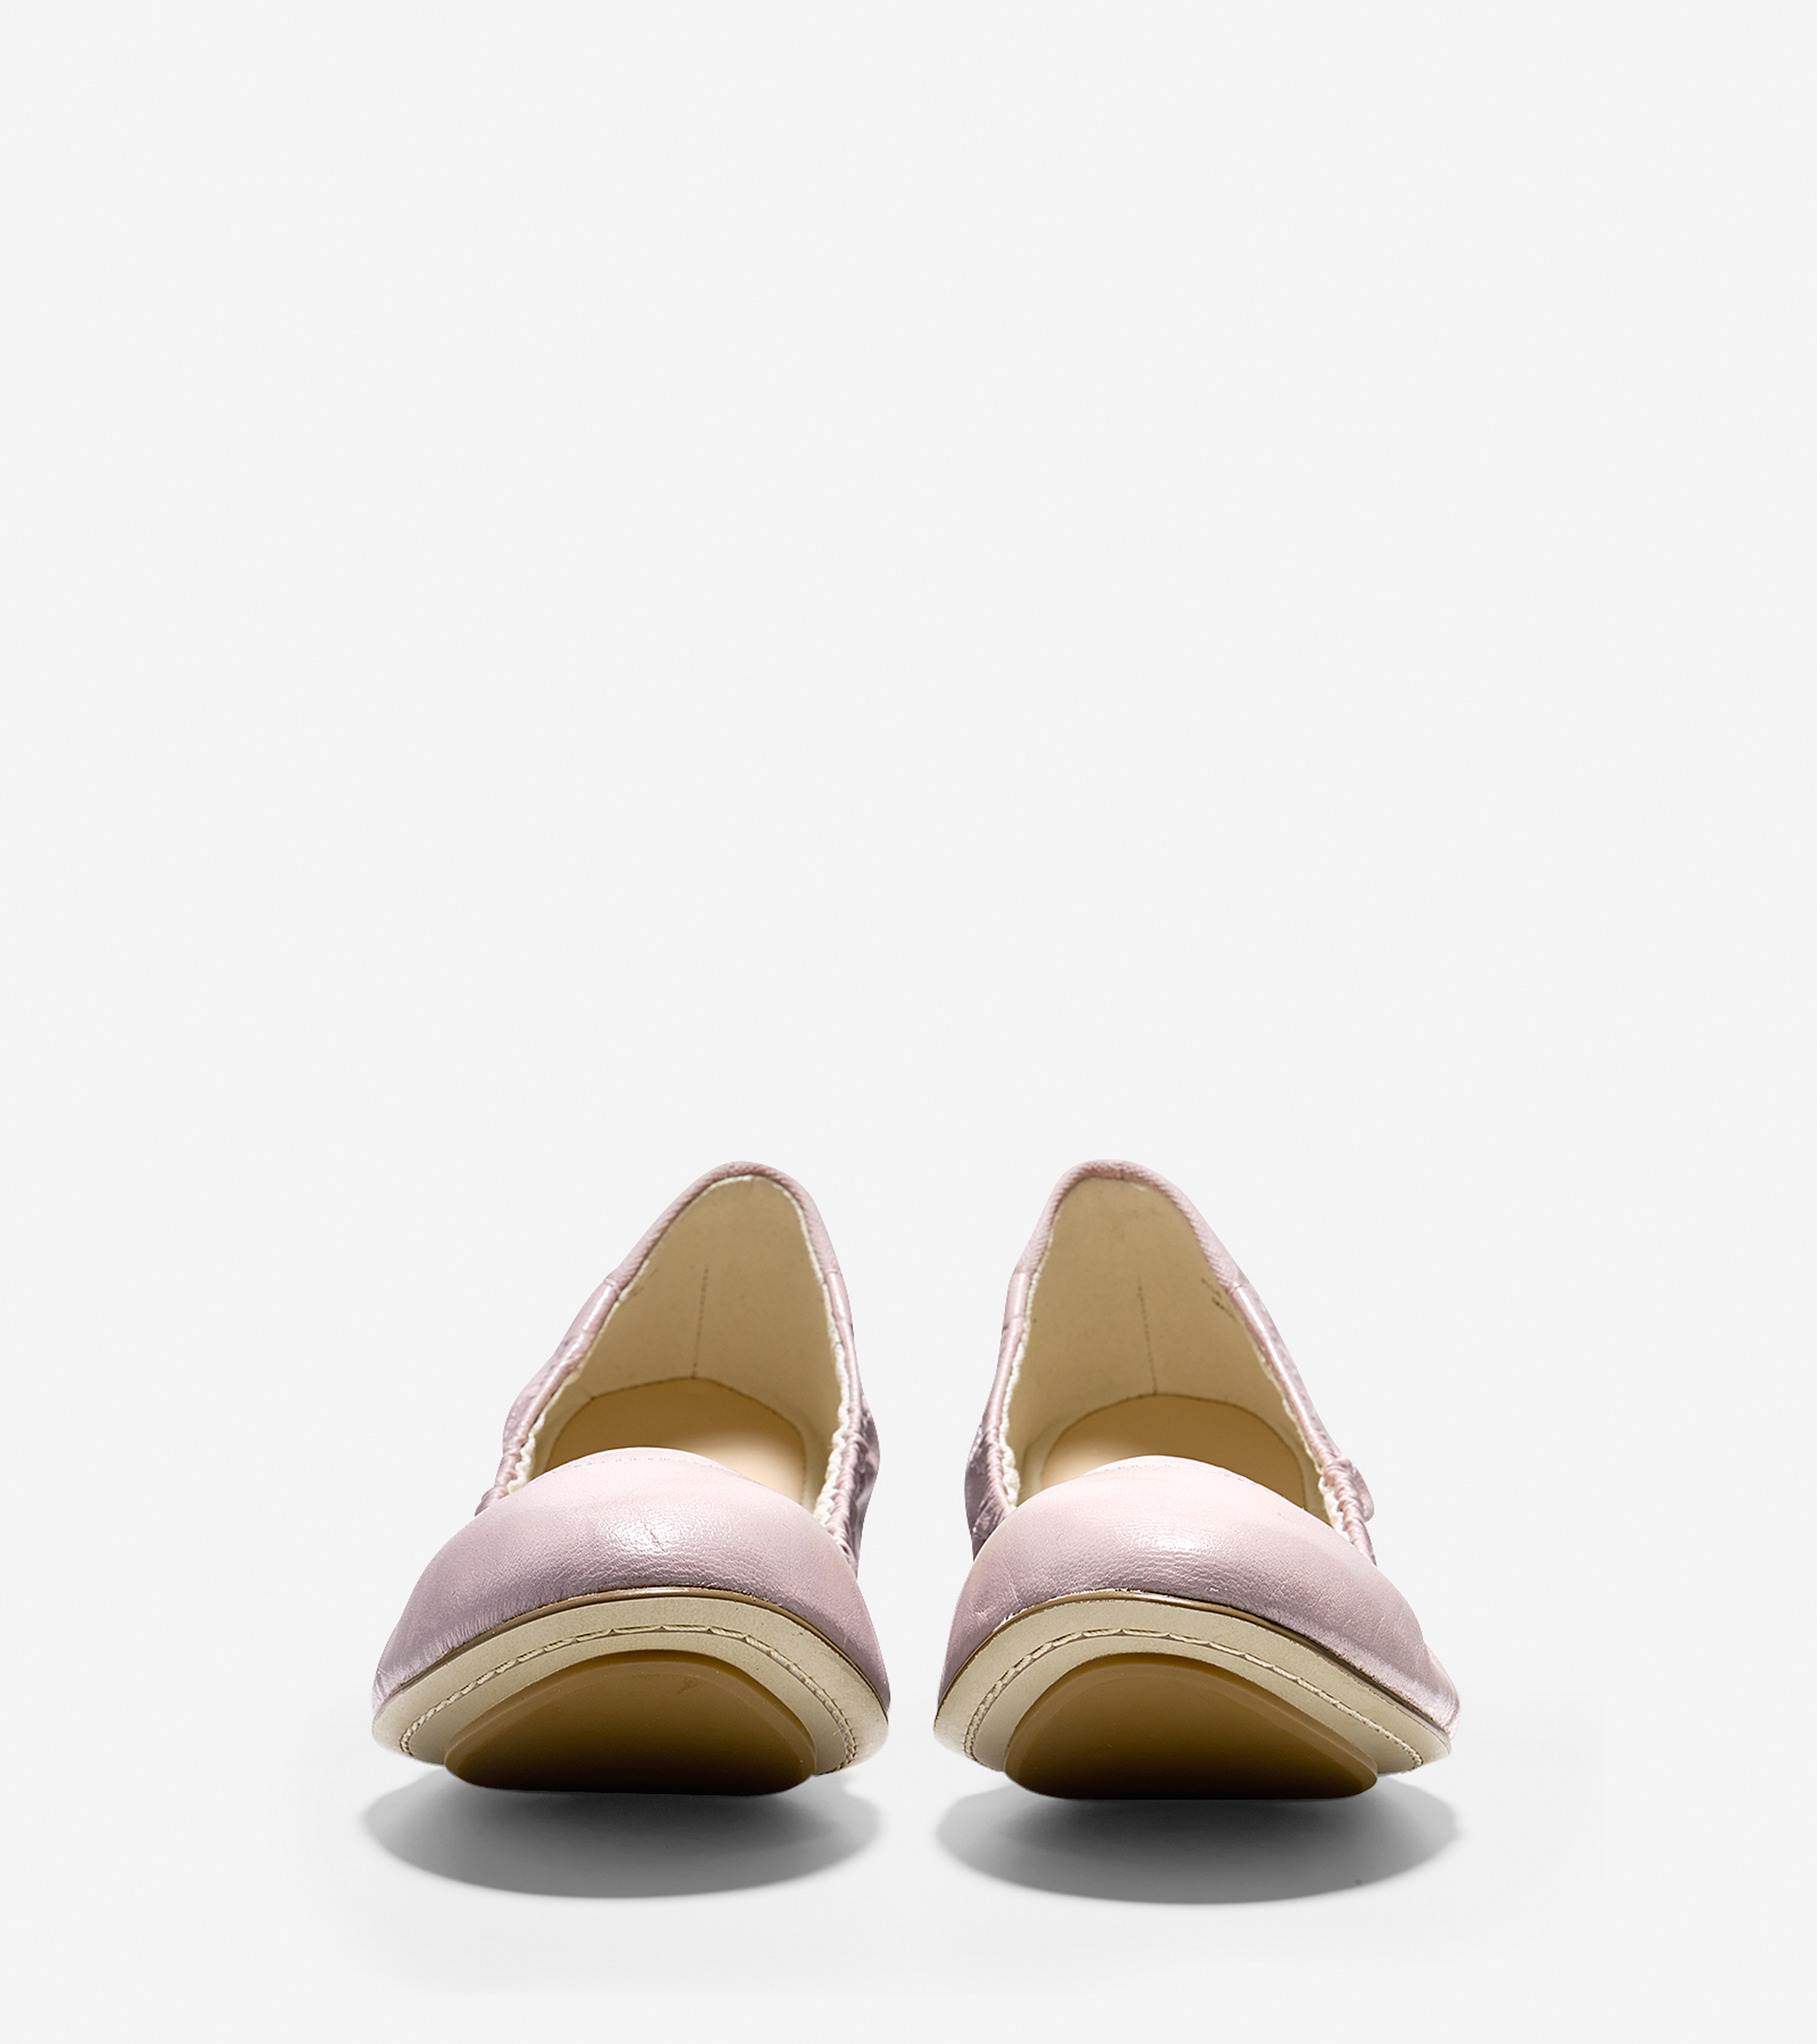 Womens Shoes Cole Haan Avery En Pointe Ballet Sugar Plum